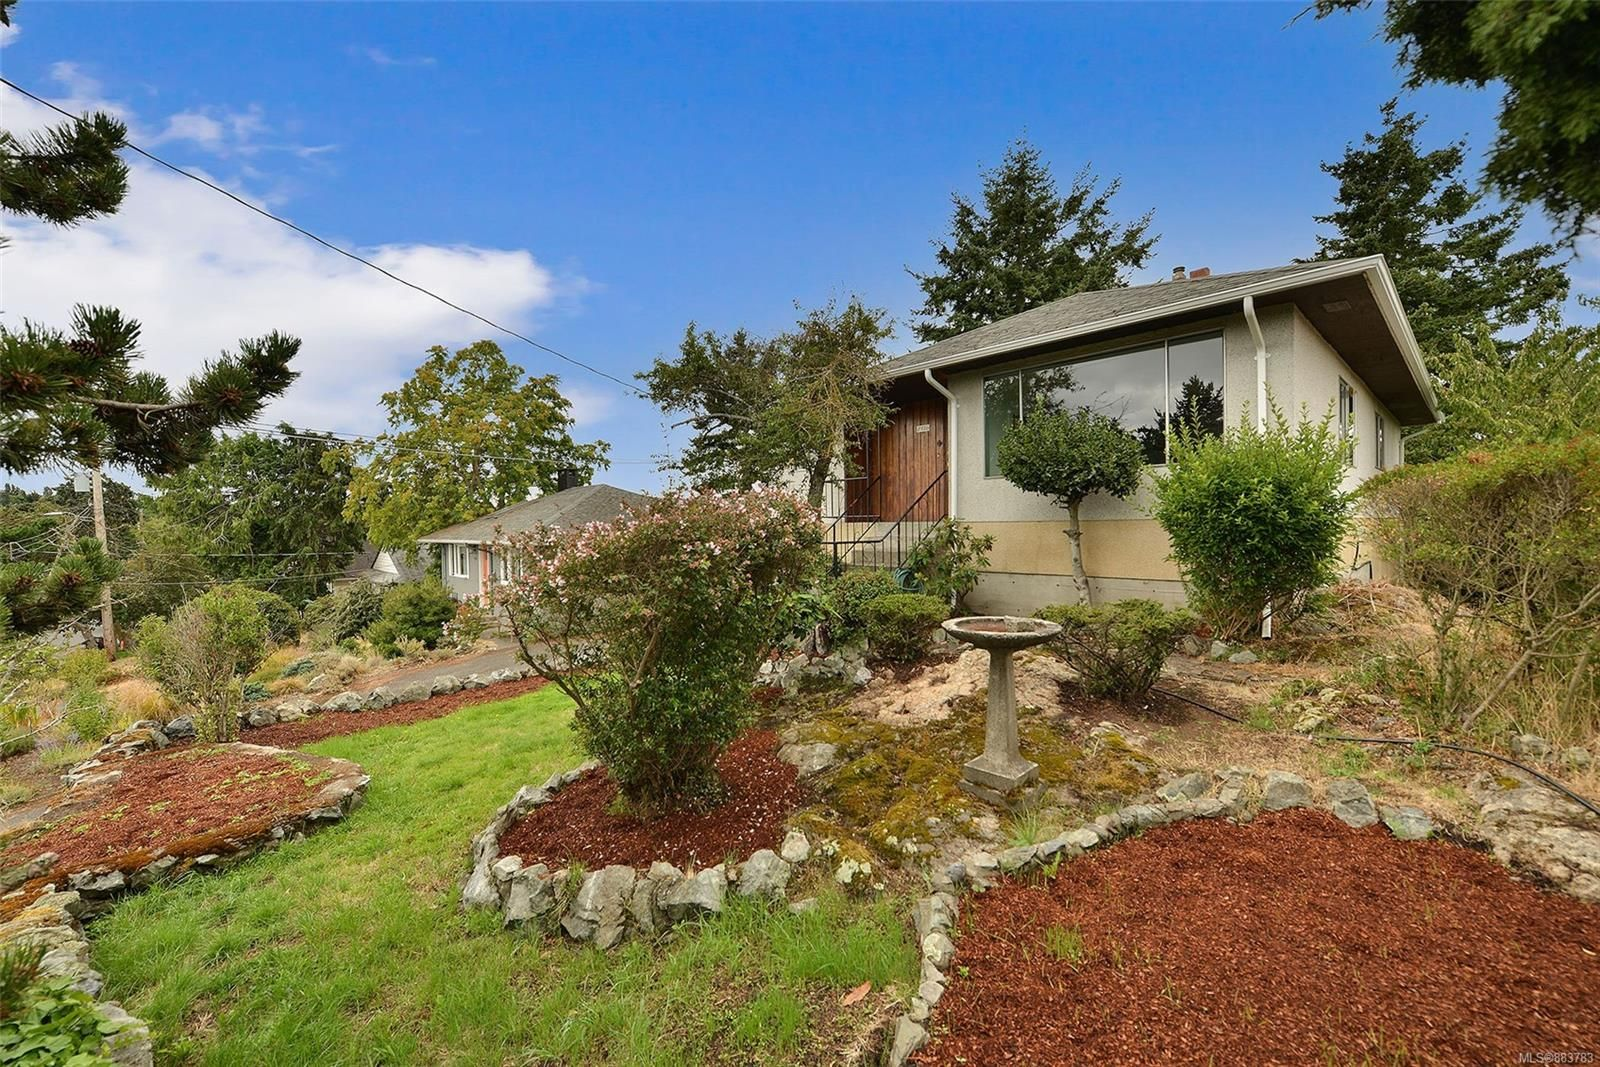 Main Photo: 2536 ASQUITH St in : Vi Oaklands House for sale (Victoria)  : MLS®# 883783